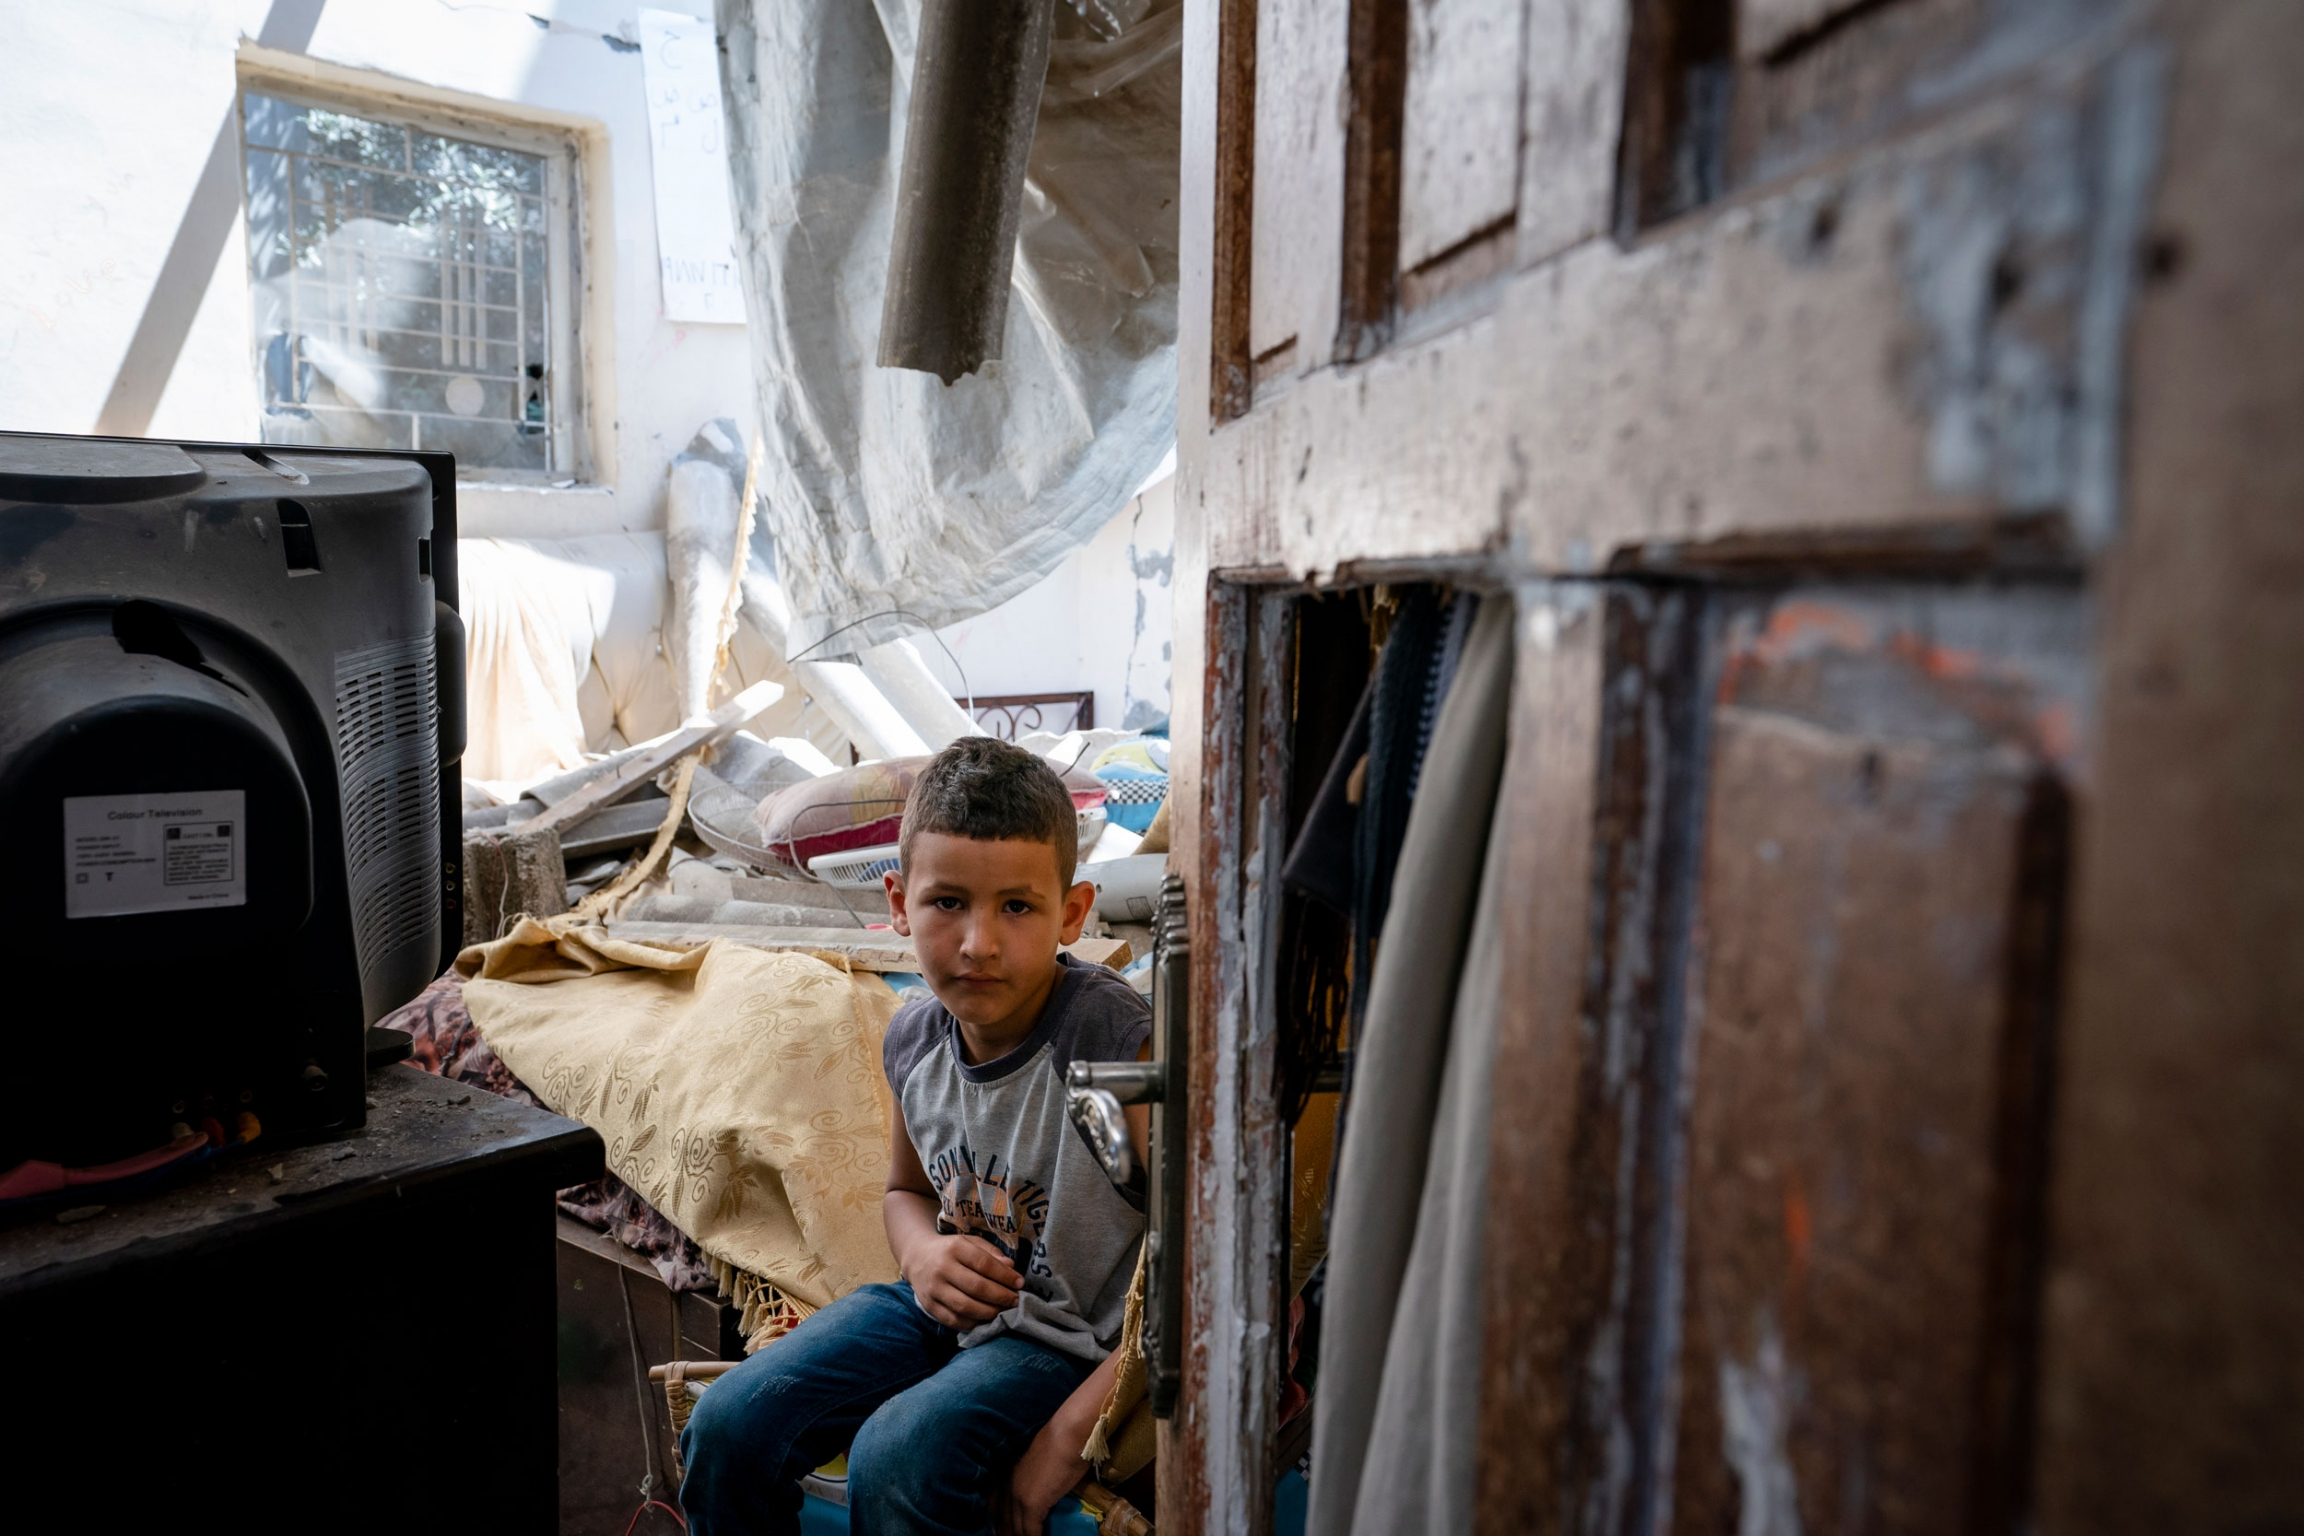 A young boy is shown seated next to a television and a damaged door in the near ground.